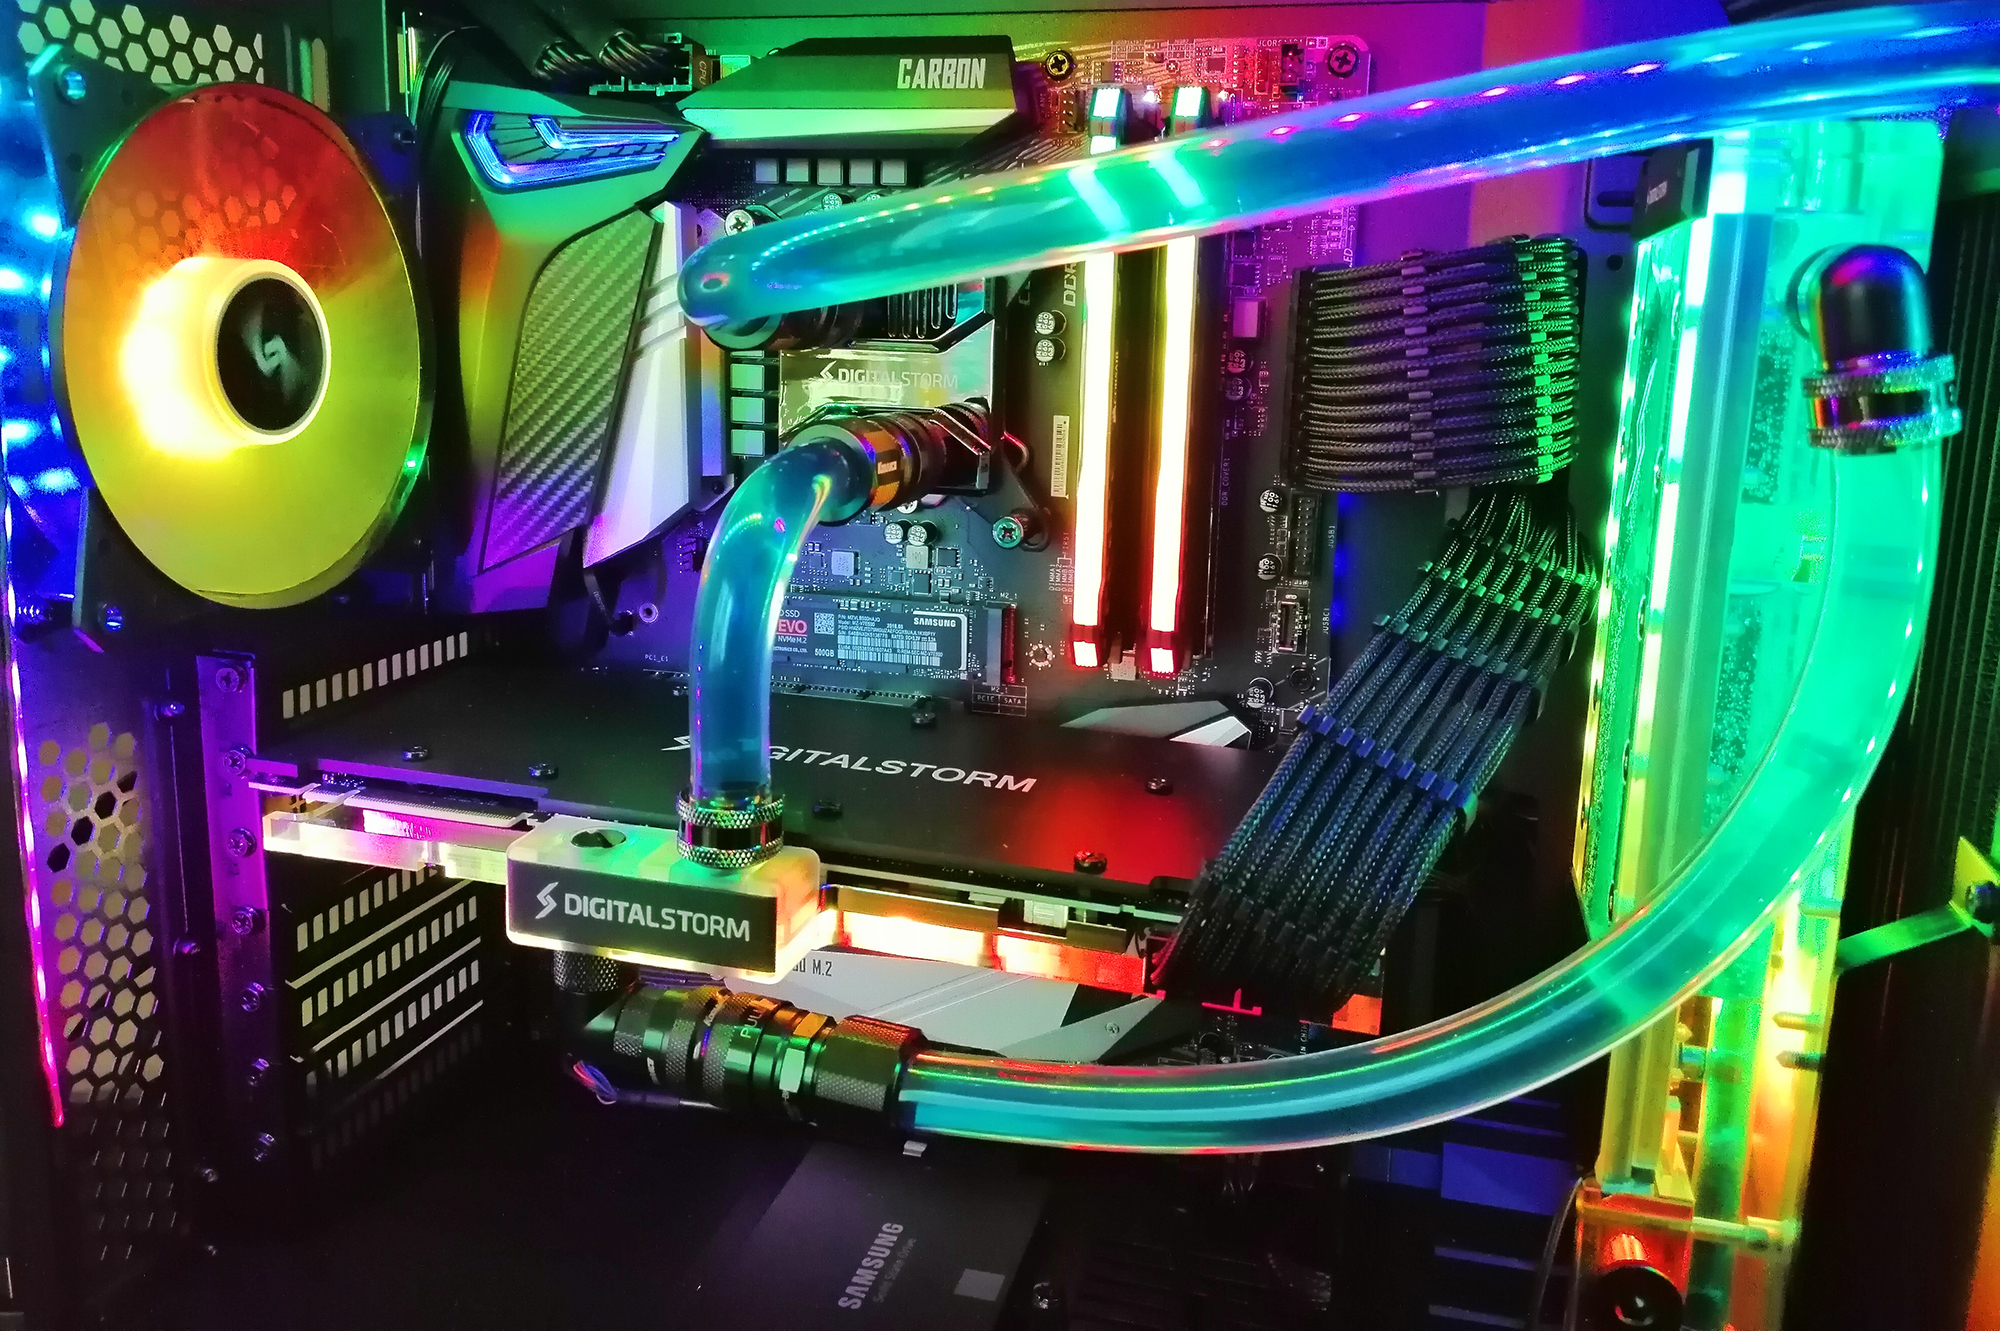 CES 2019: Digital Storm Entry-Level Vanquish PC with Bespoke Chassis